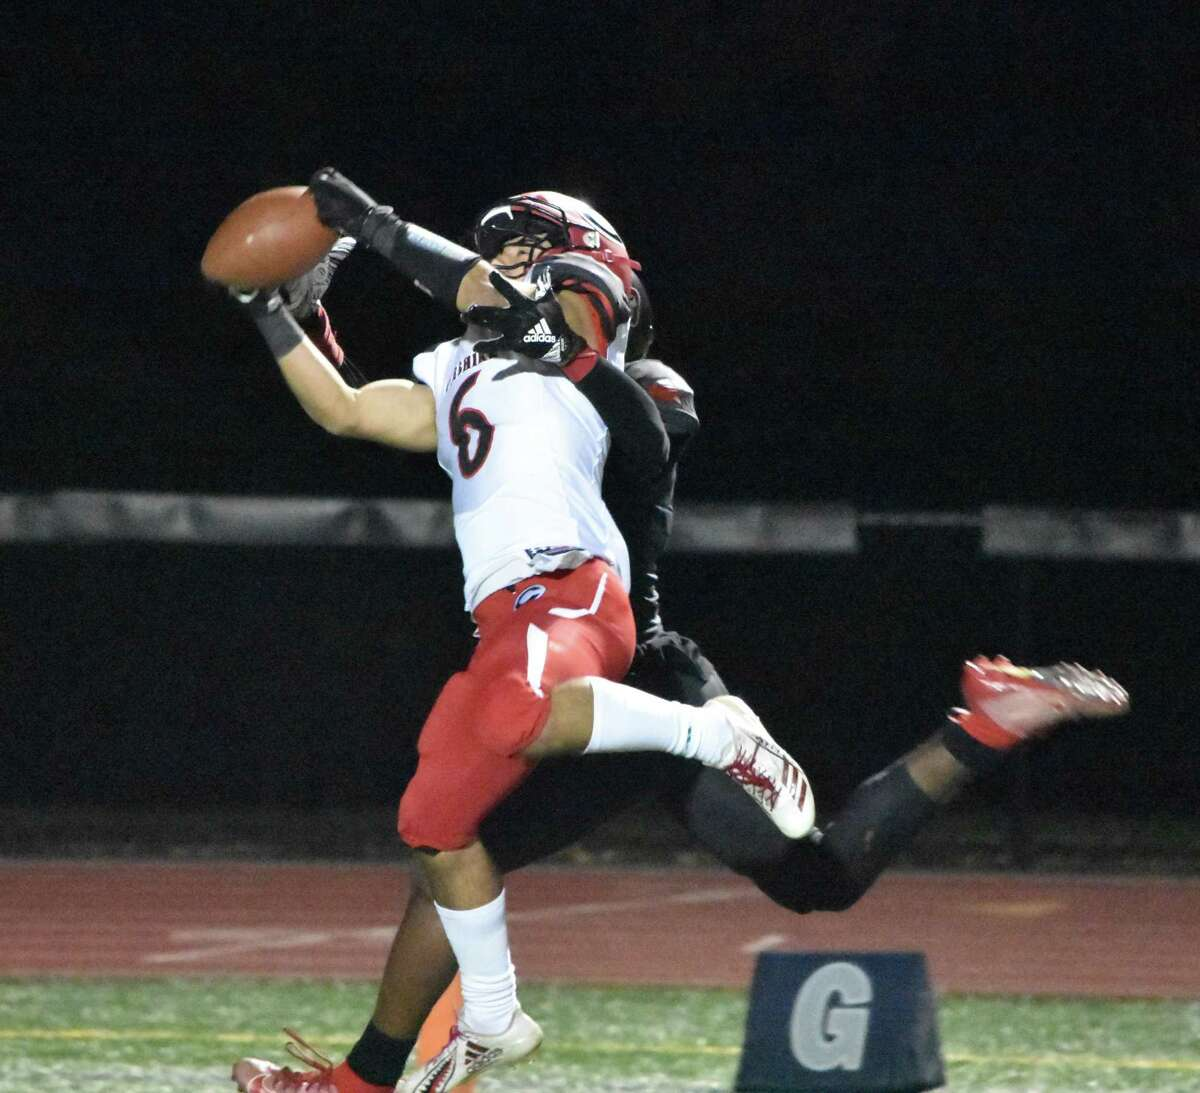 Cheshire's Christian Russo makes an interception against Wilbur Cross at Bowen Field in New Haven on Thursday.